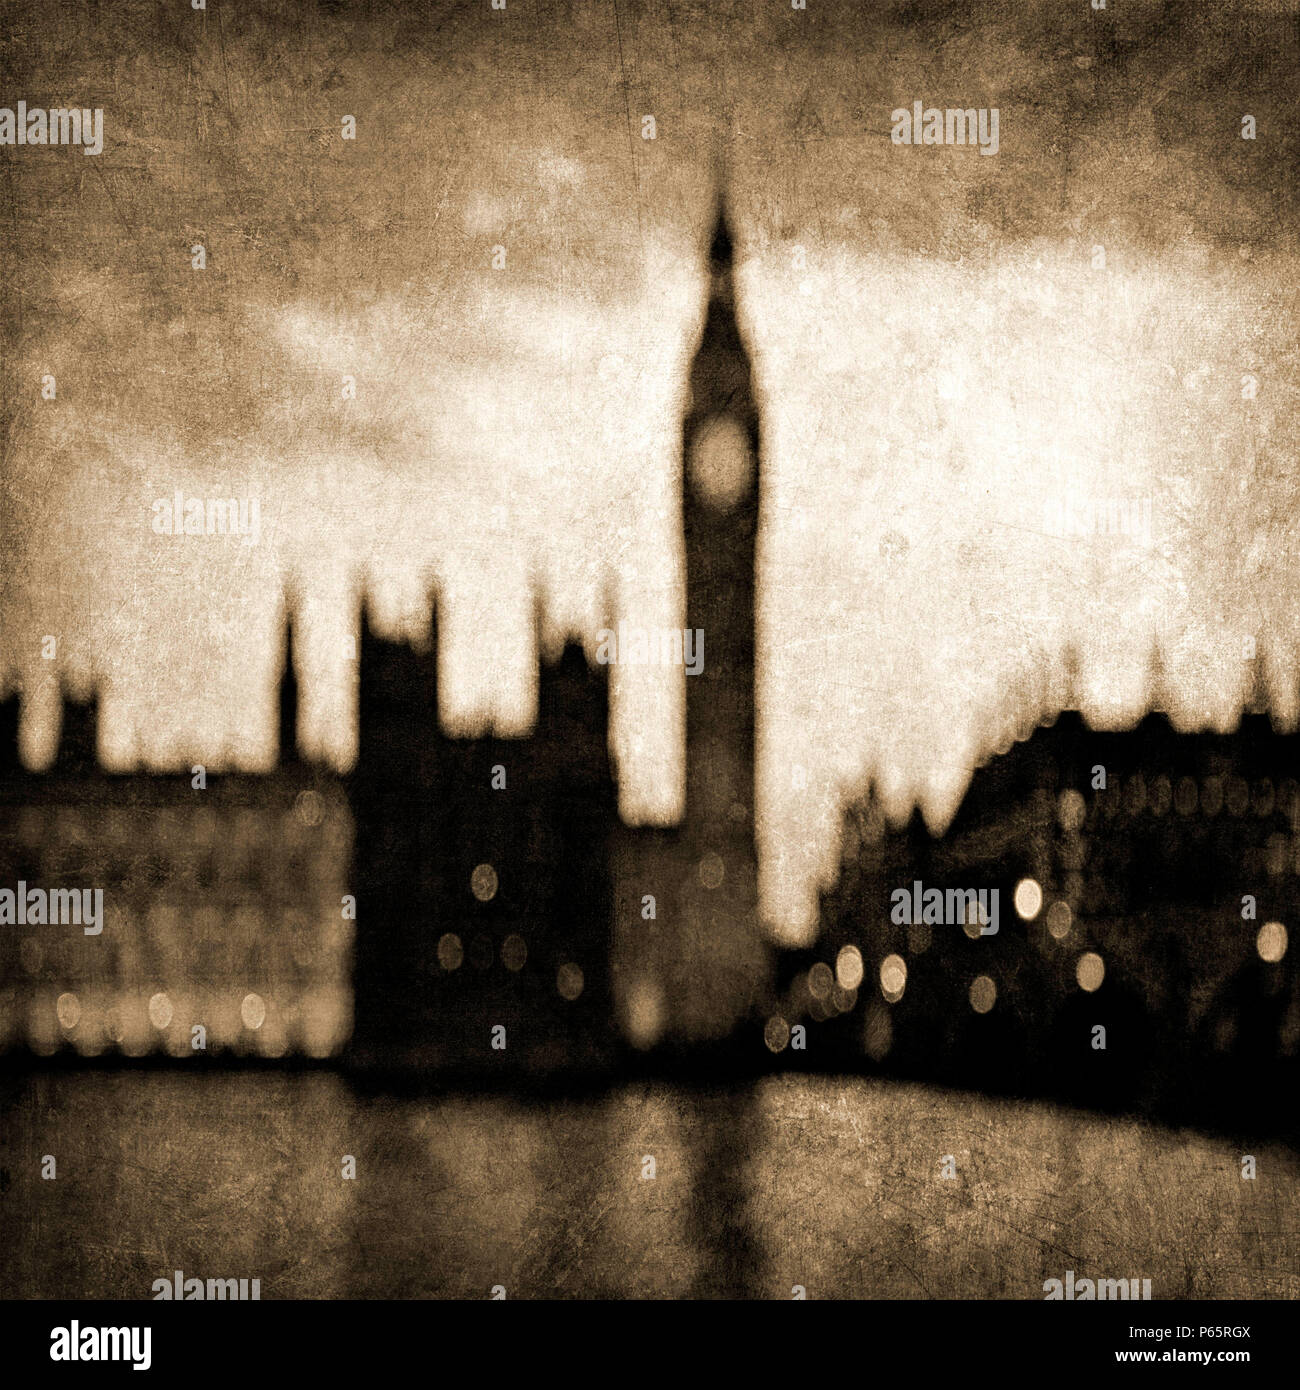 Big Ben and Westminster in Sepia Tones with Blurred Effect, London, UK - Stock Image